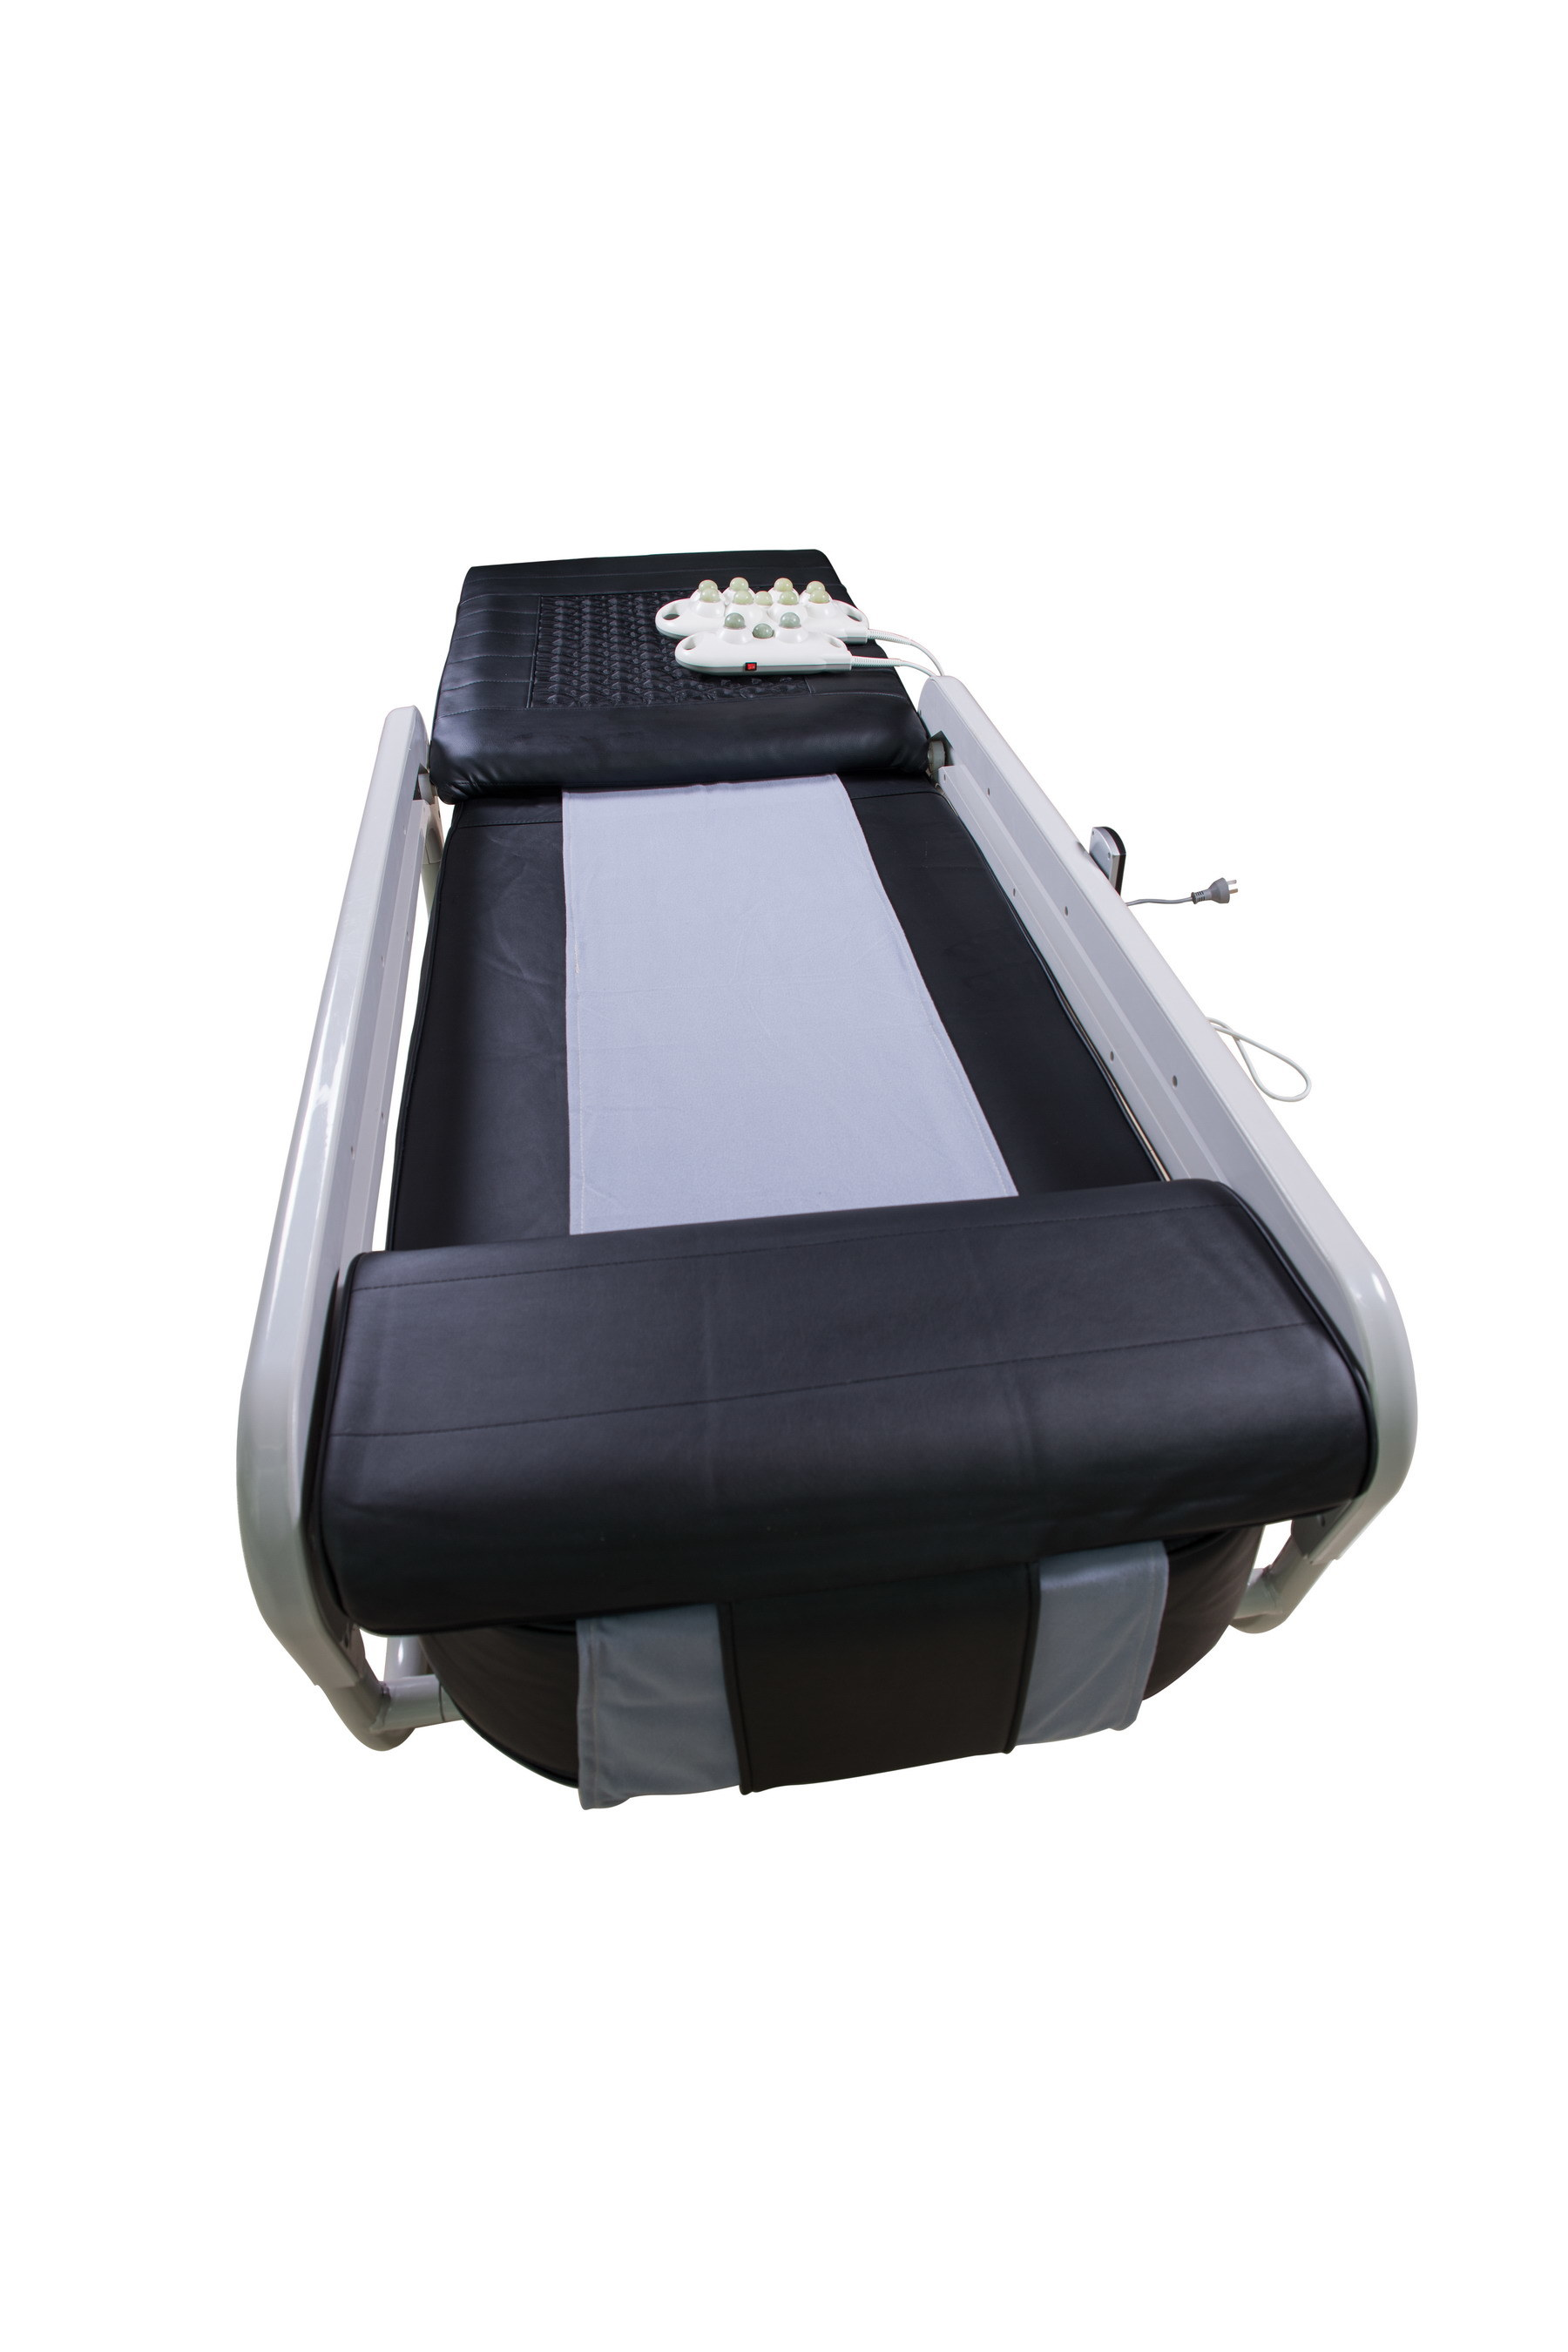 Jade Massage Bed Ceragem Type